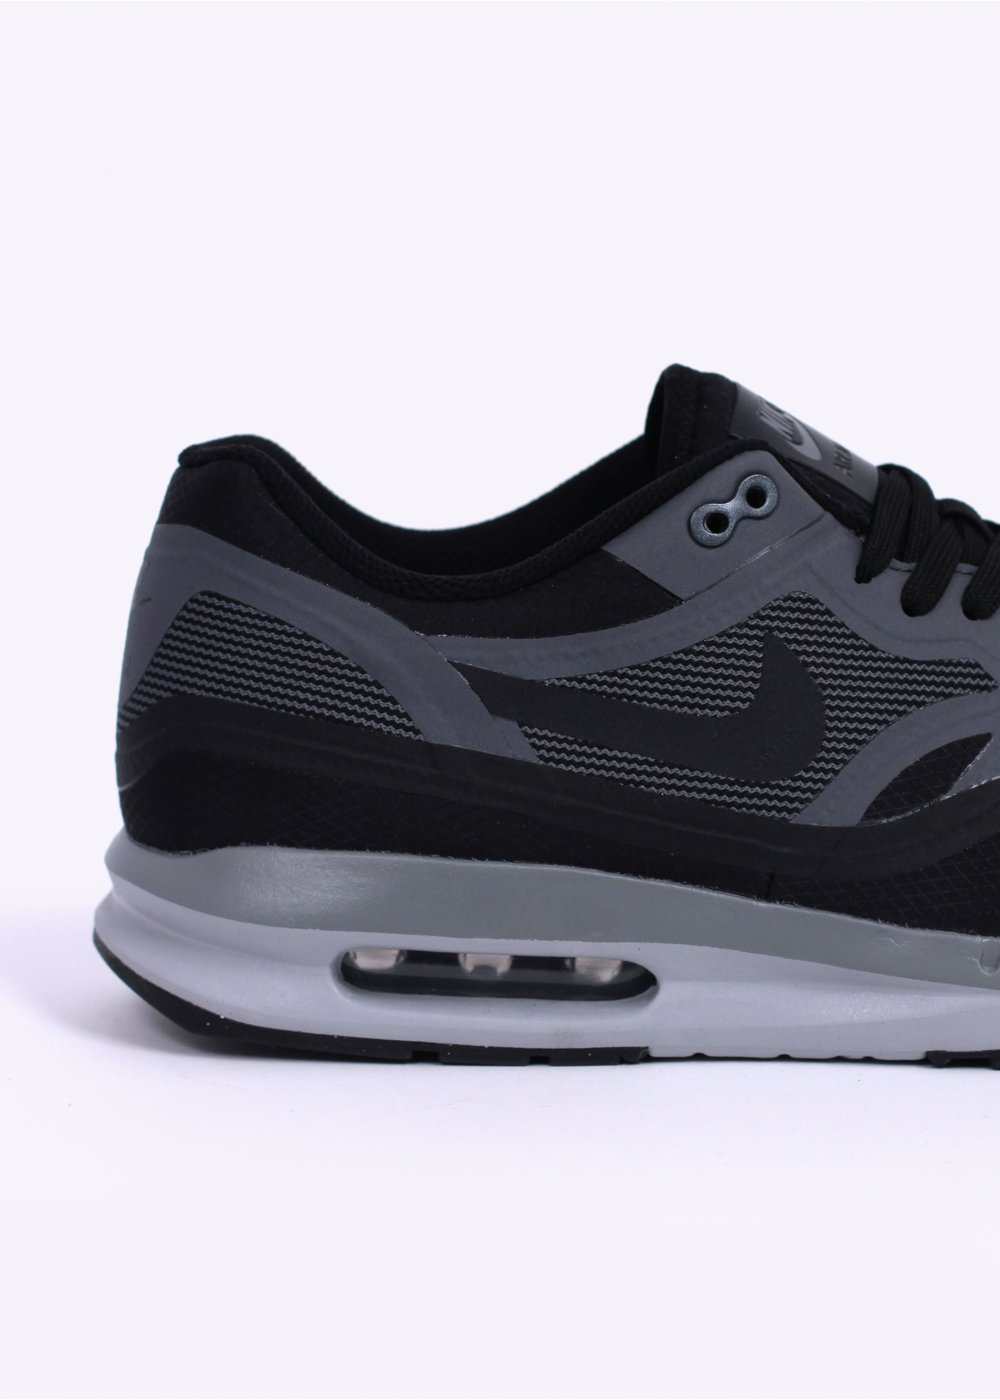 nike air max lunar 1 black. Black Bedroom Furniture Sets. Home Design Ideas